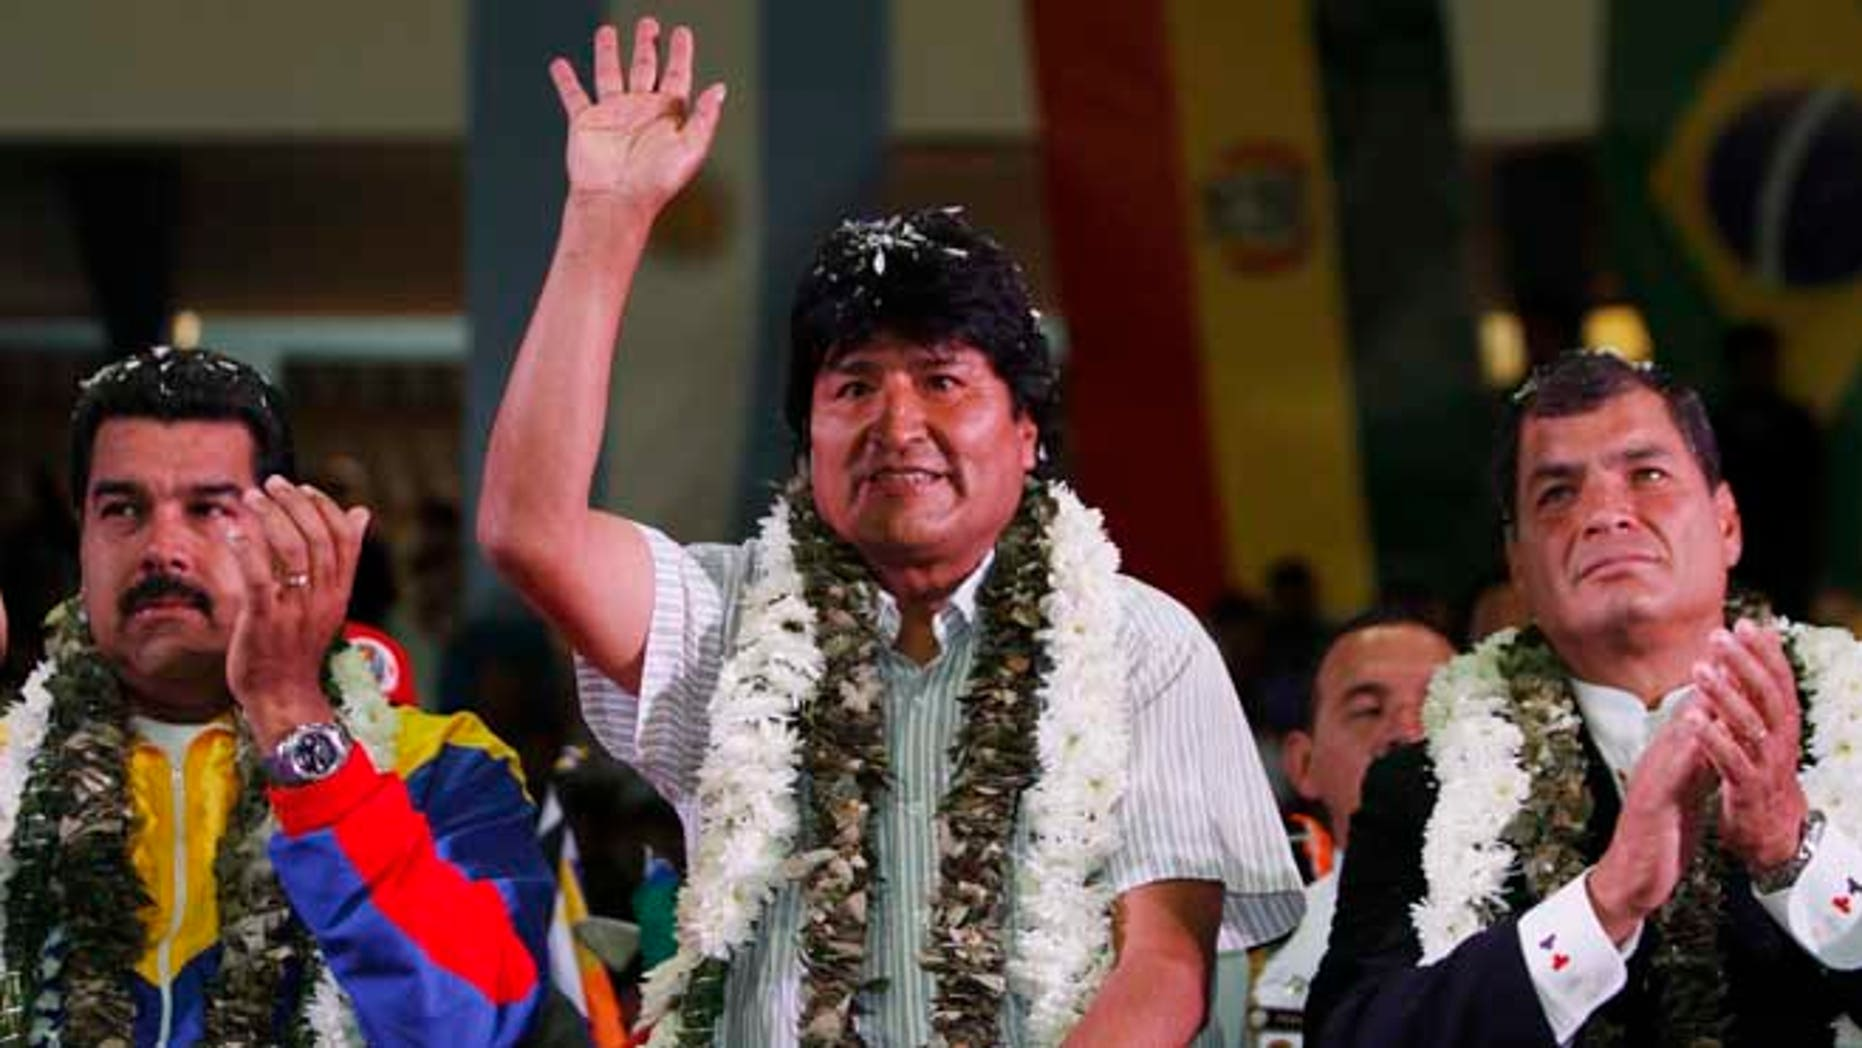 July 4, 2013: Venezuela's President Nicolas Maduro, left, Ecuador's President Rafael Correa, right, and Bolivia's President Evo Morales acknowledge supporters during a welcome ceremony for presidents attending an extraordinary meeting in Cochabamba, Bolivia.